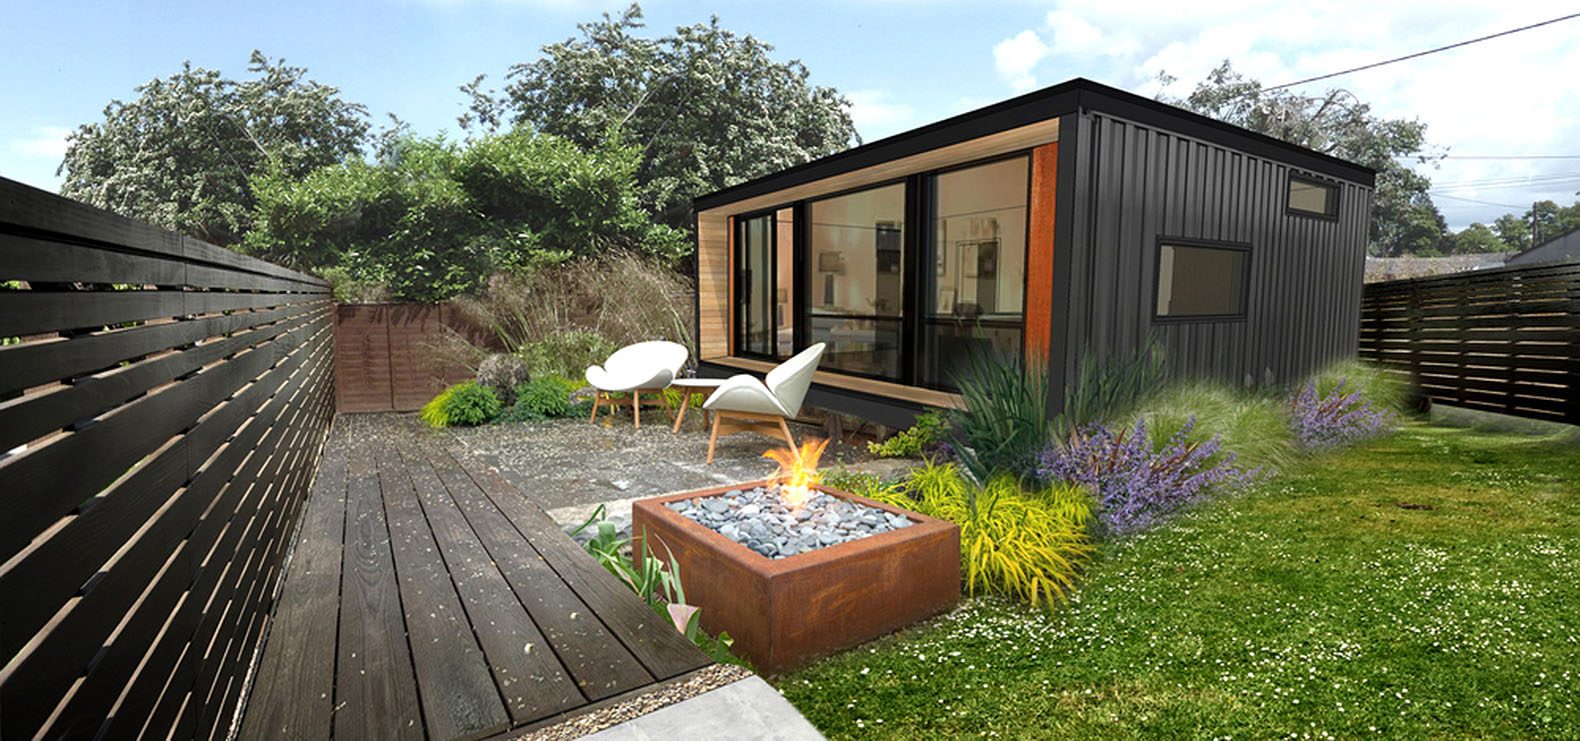 Sustainable Prefab Homes What Green Living Is About Every Single Topic